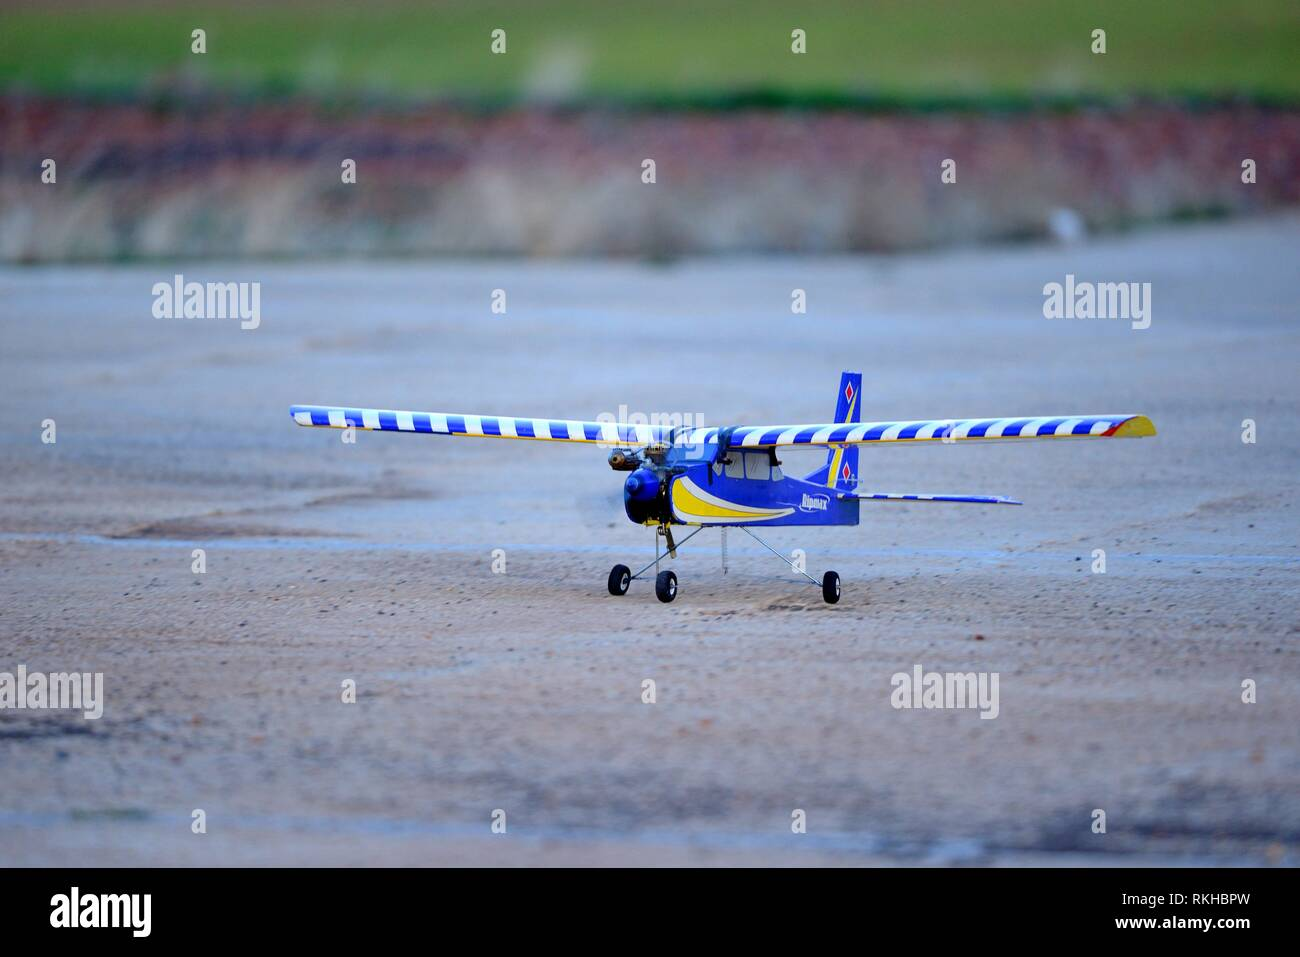 Model airplane approaching to land. - Stock Image